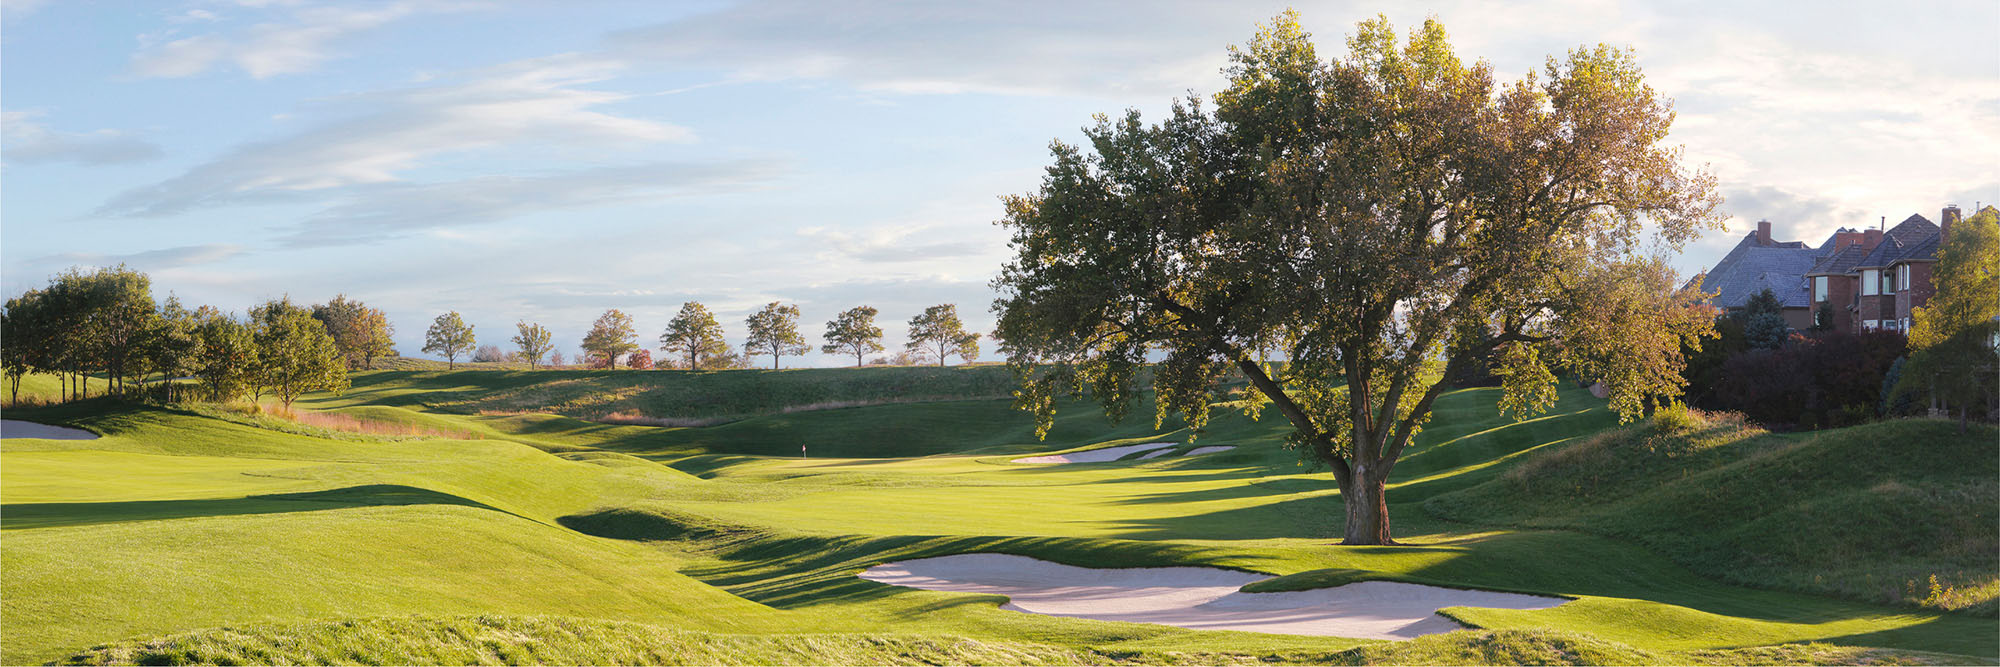 Golf Course Image - Champions No. 18